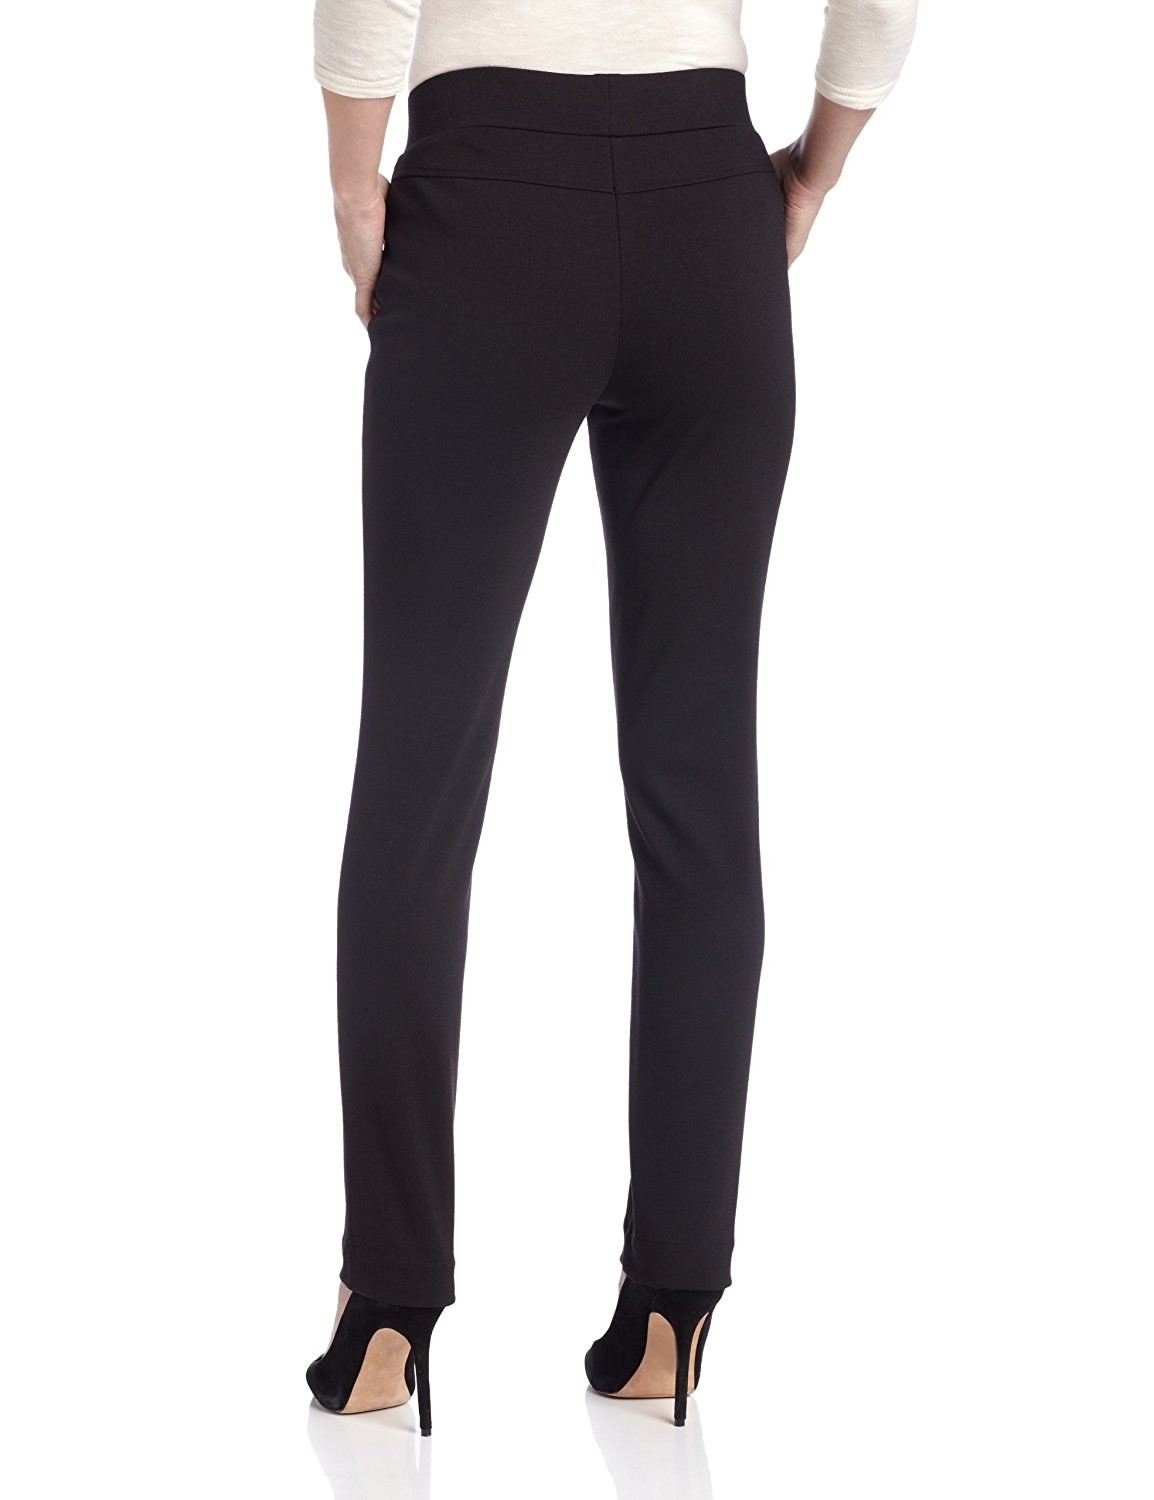 68015762f713 Black Dress Pants Womens Amazon